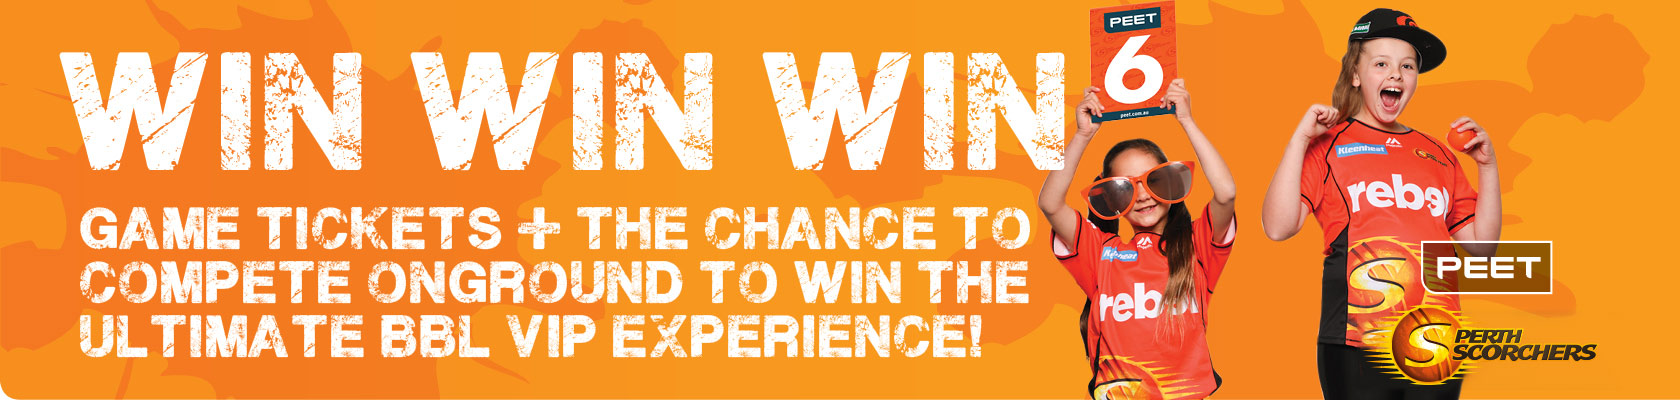 Win Scorchers game tickets